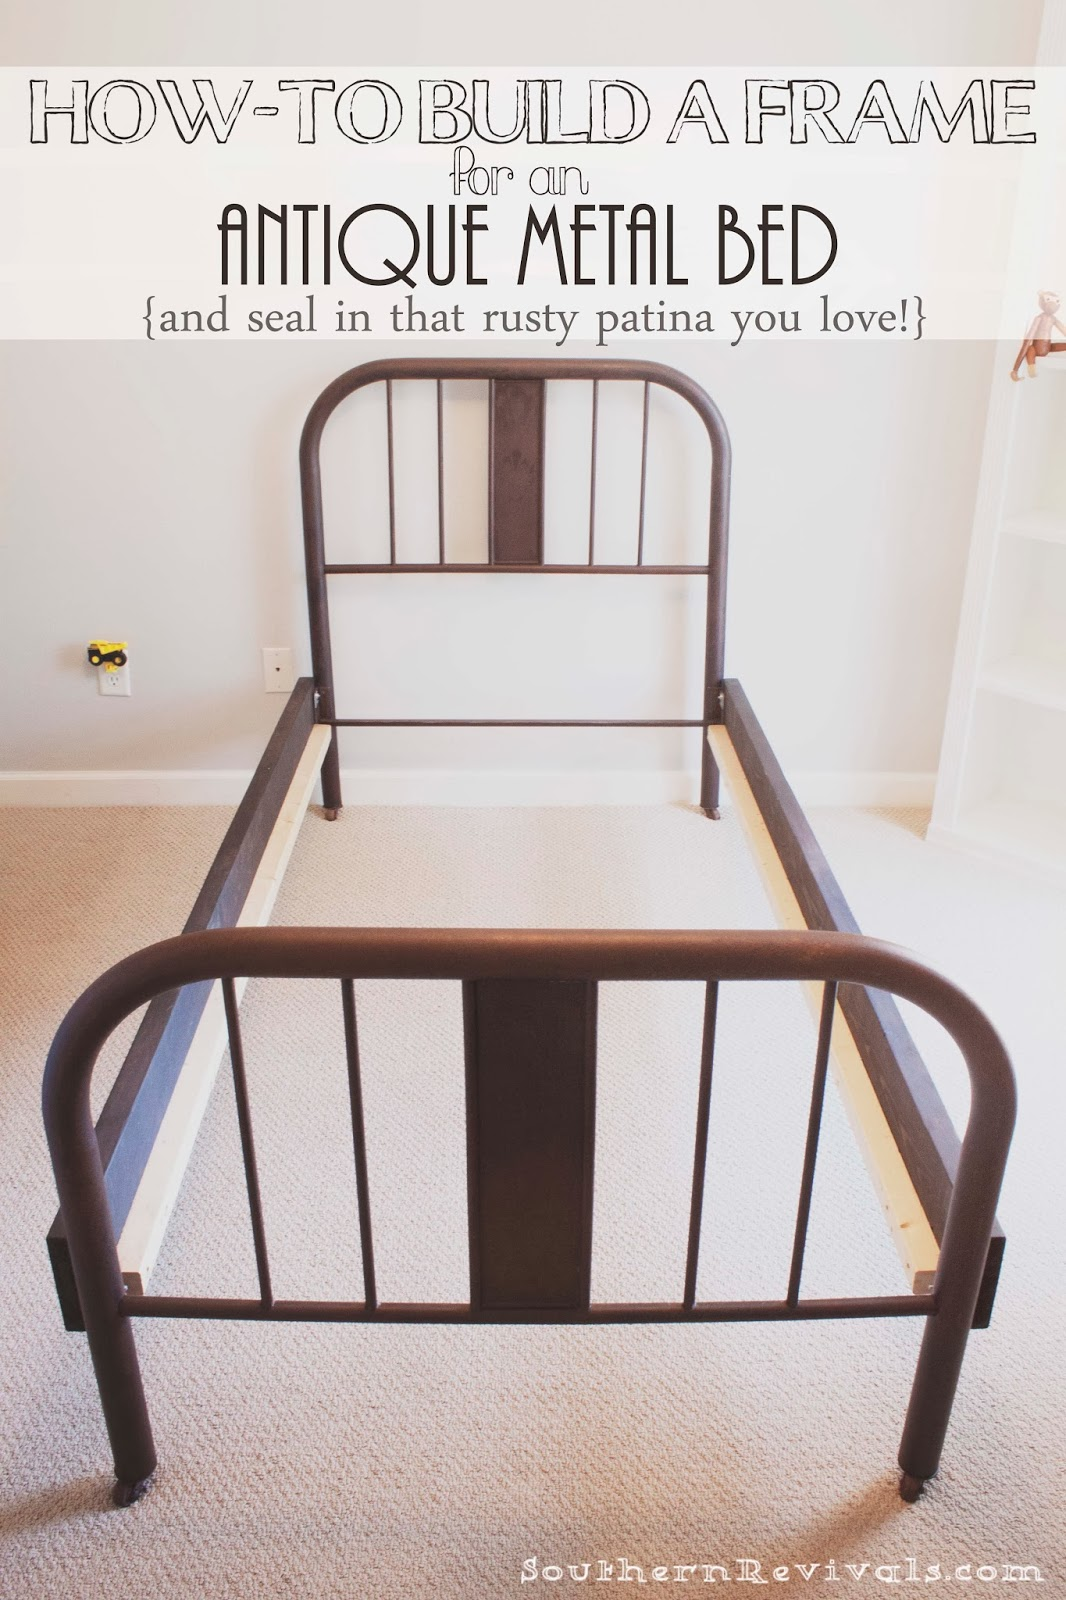 how to make a frame for an antique metal bed and seal in a rusty patina - Vintage Bed Frame